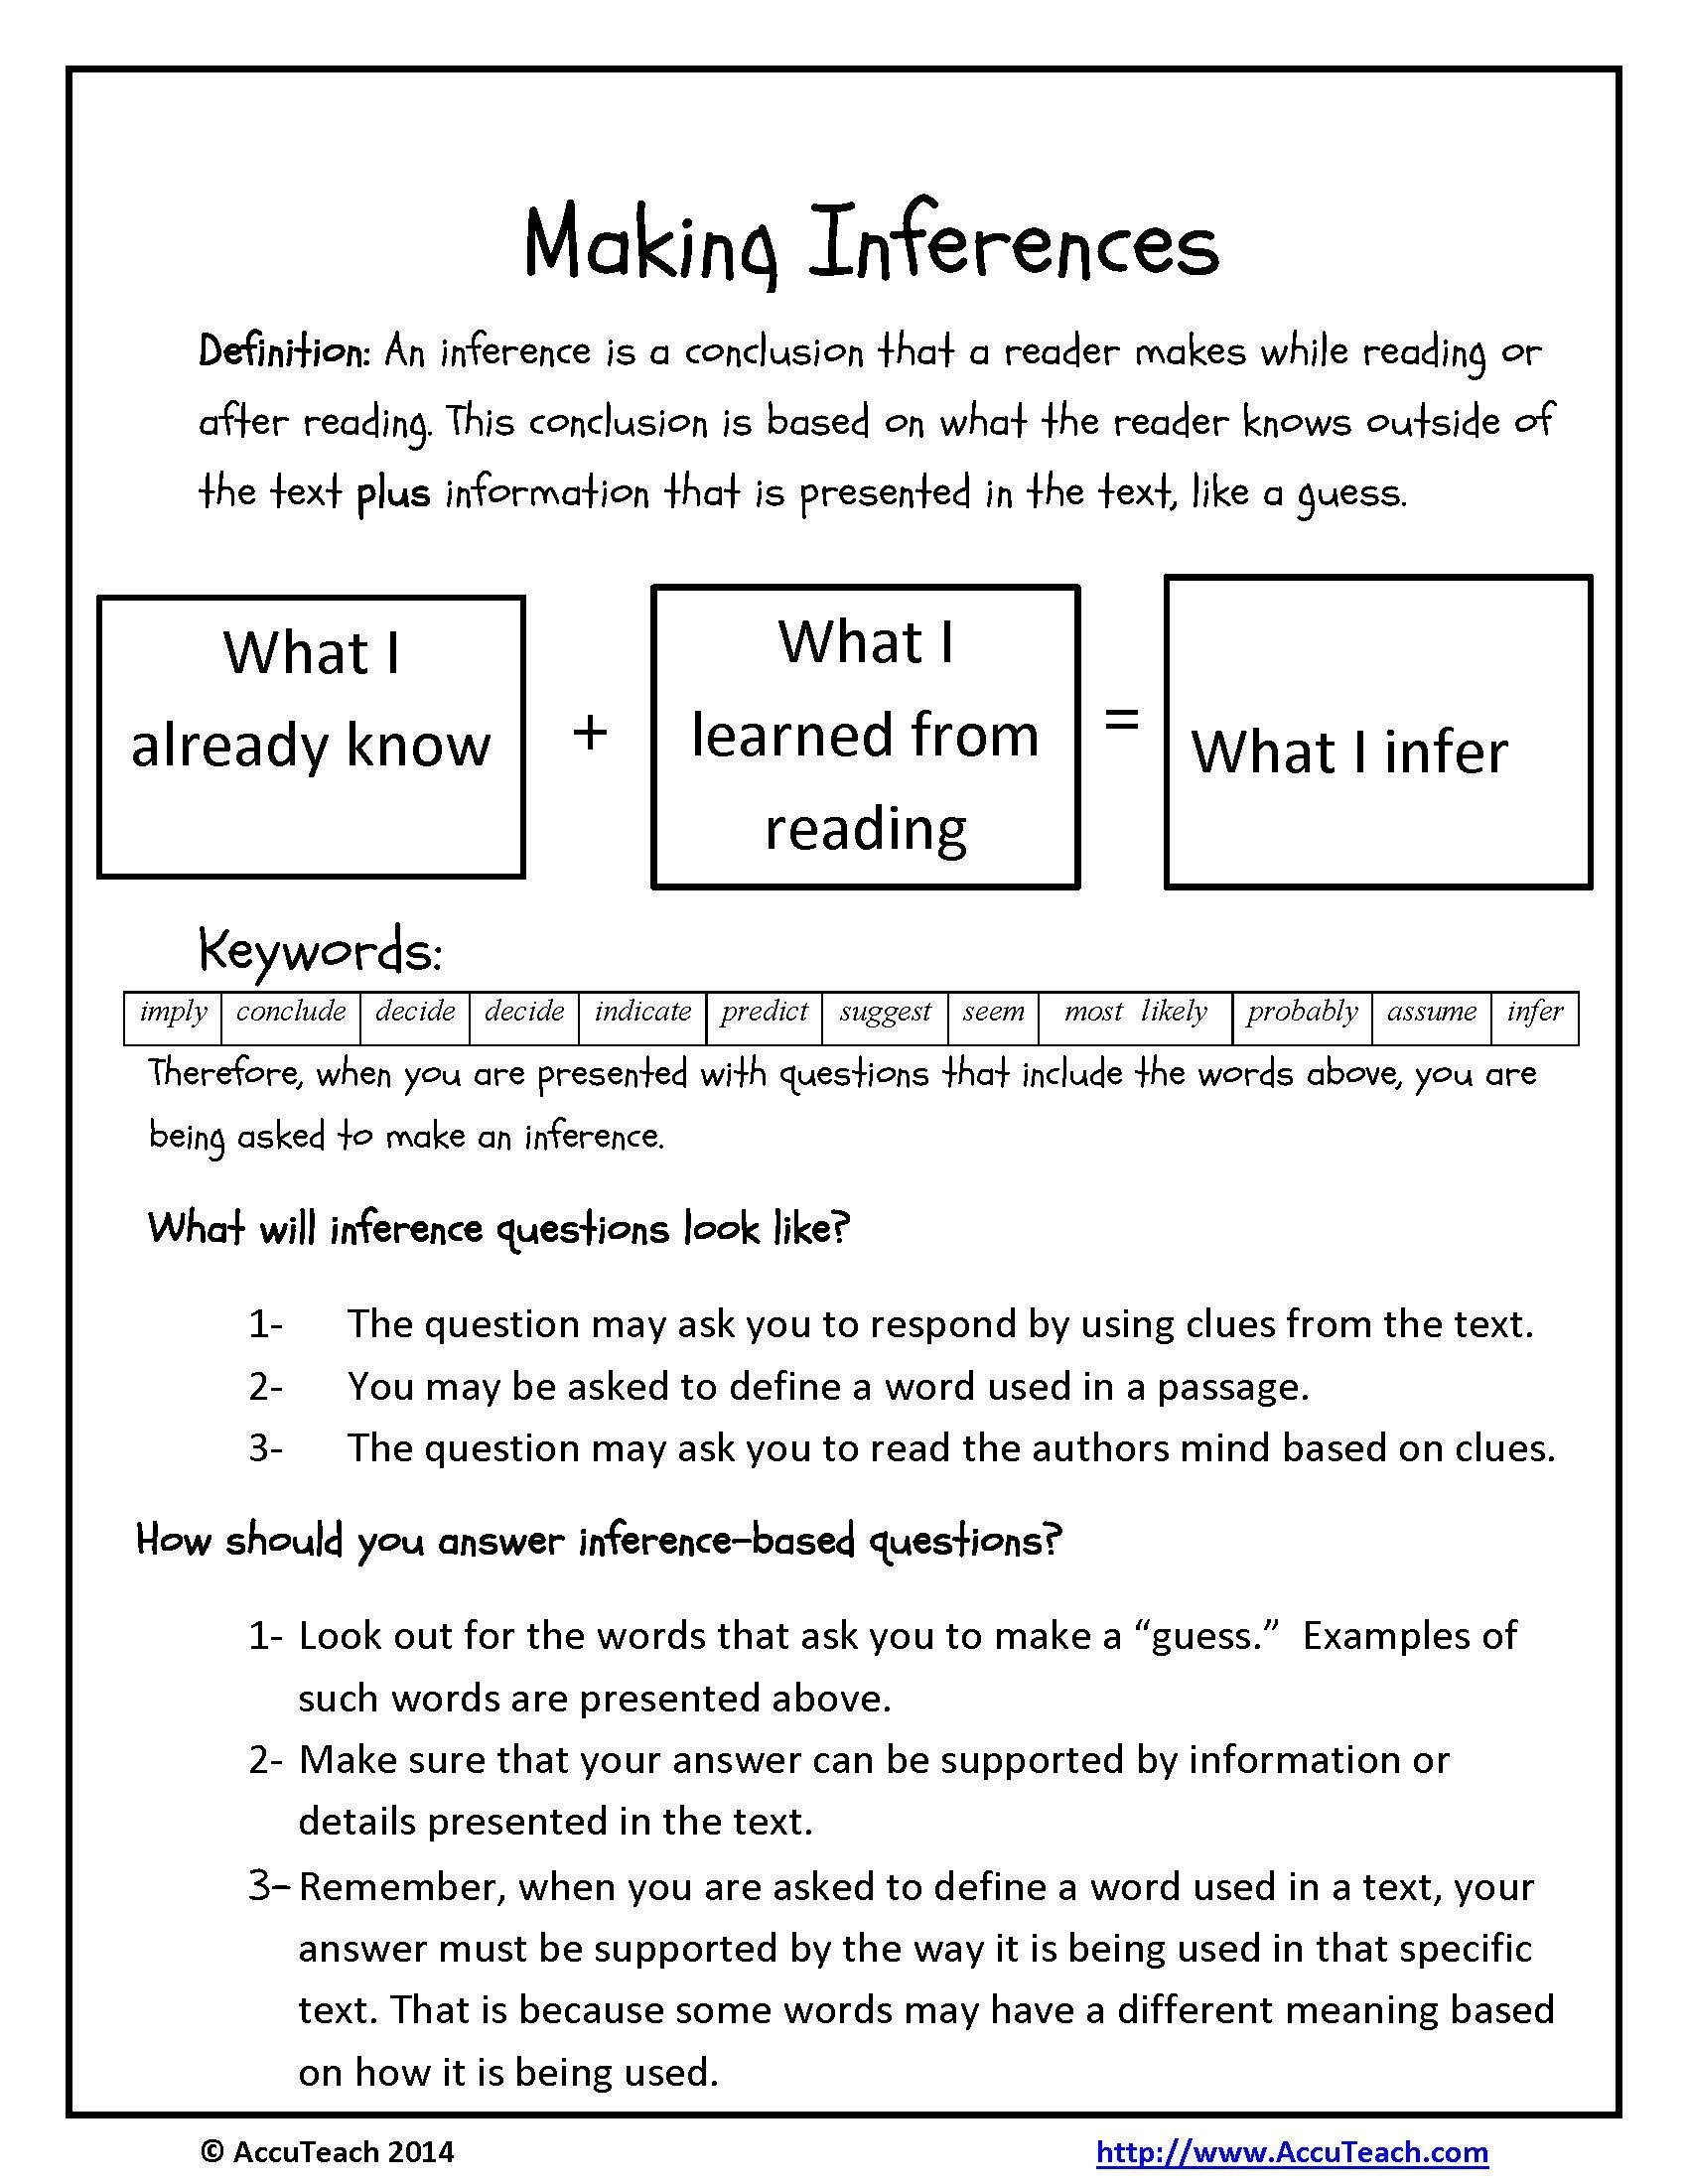 Making Inferences Worksheet 4th Grade Inference Questions Reading Prehension